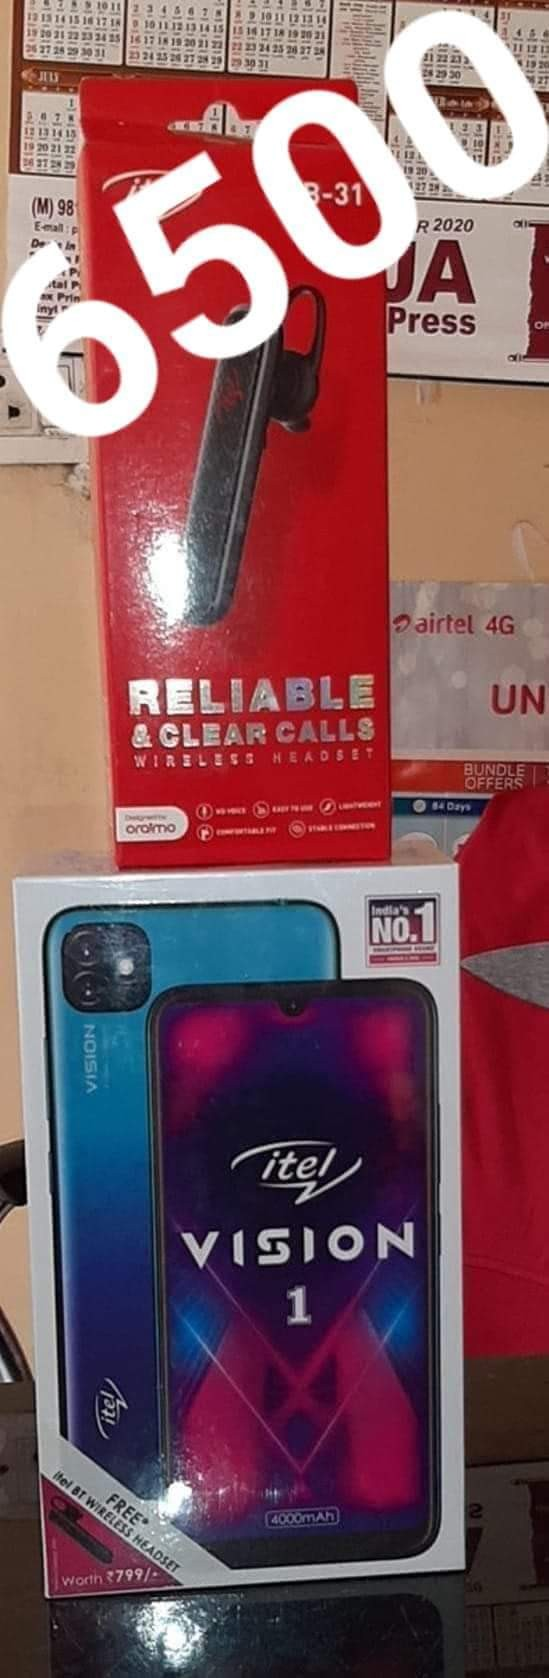 ITELMOBILES VISION 1 DUEL 4G 2GB RAM,32GB INTERNAL 4000MAH BATTERY BLUE COLOUR